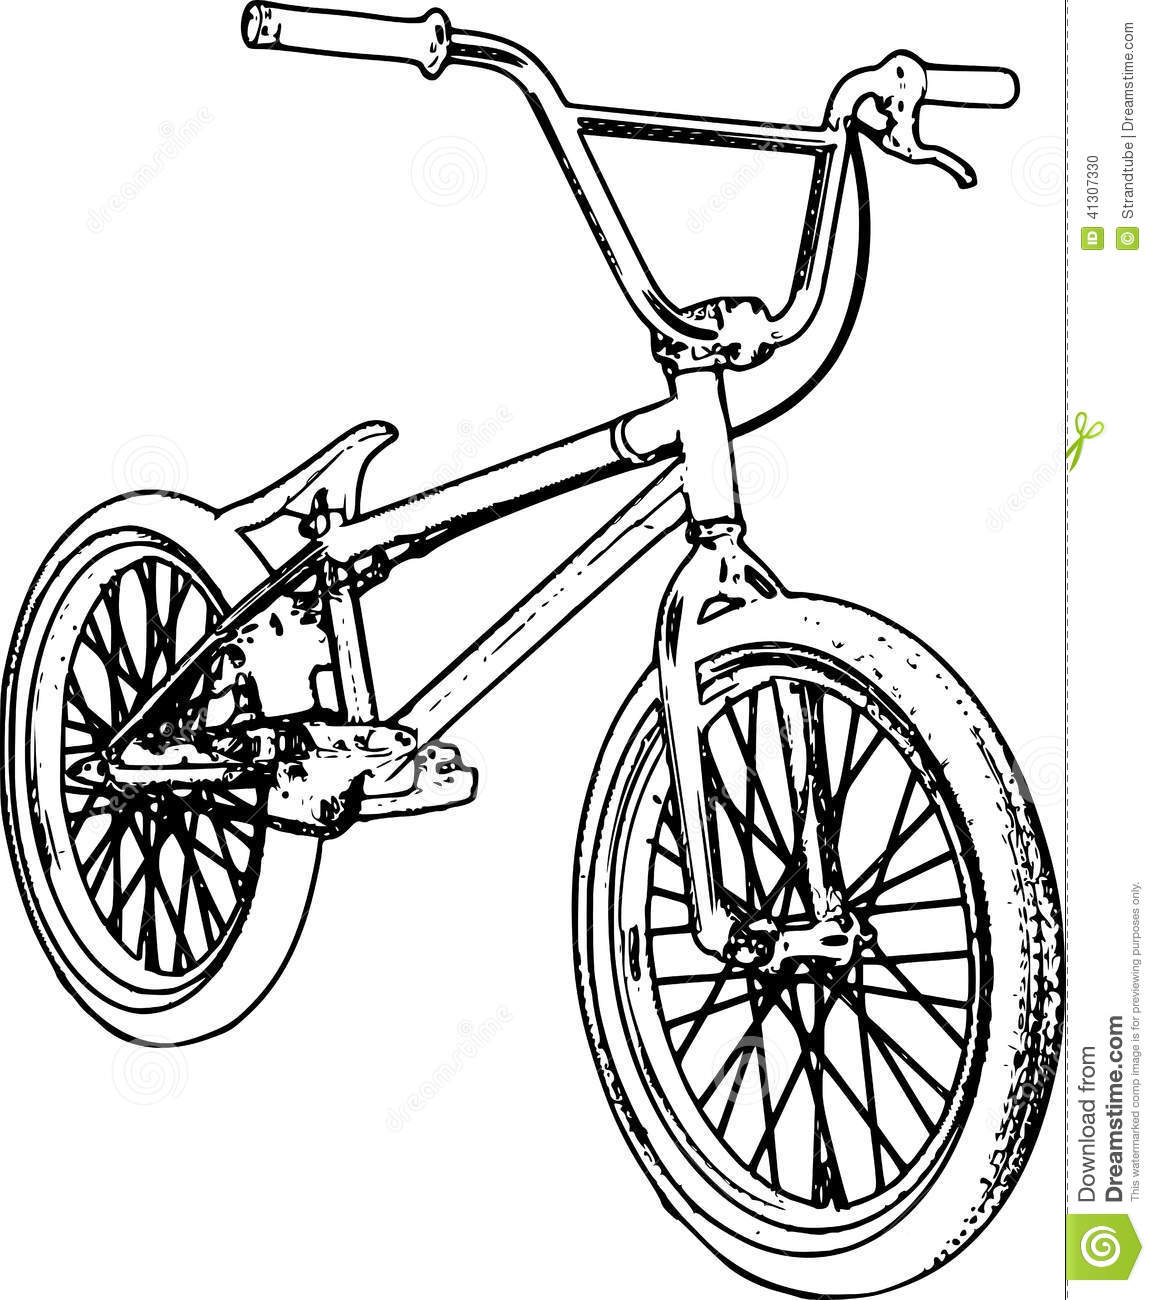 Racing Bike: Racing Bike Colouring Pages